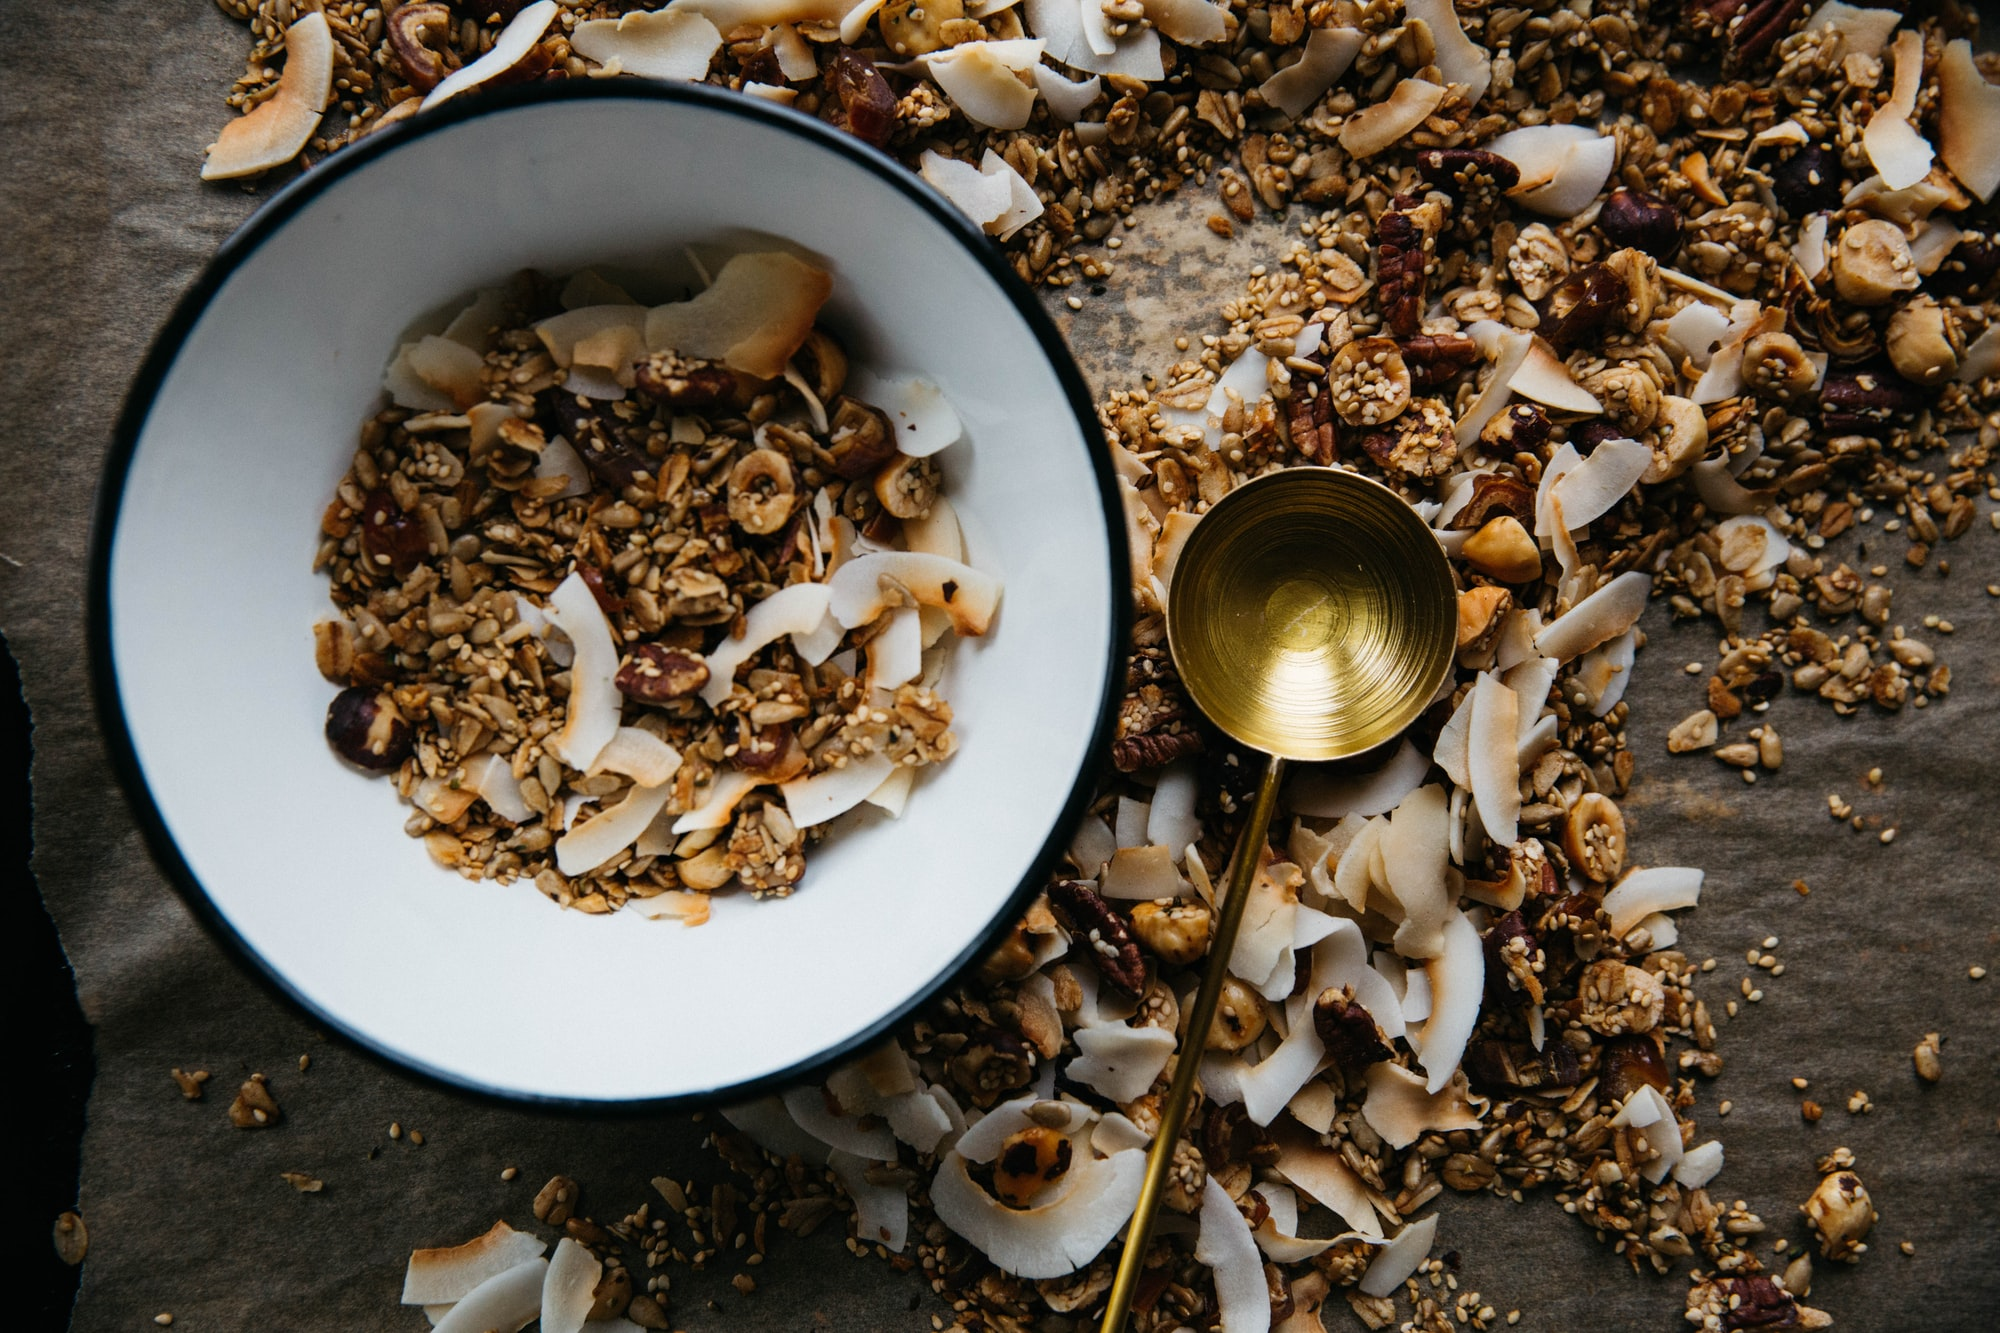 Whole grains and bran are a natural constipation remedy by Rachael Gorjestani for Unsplash.